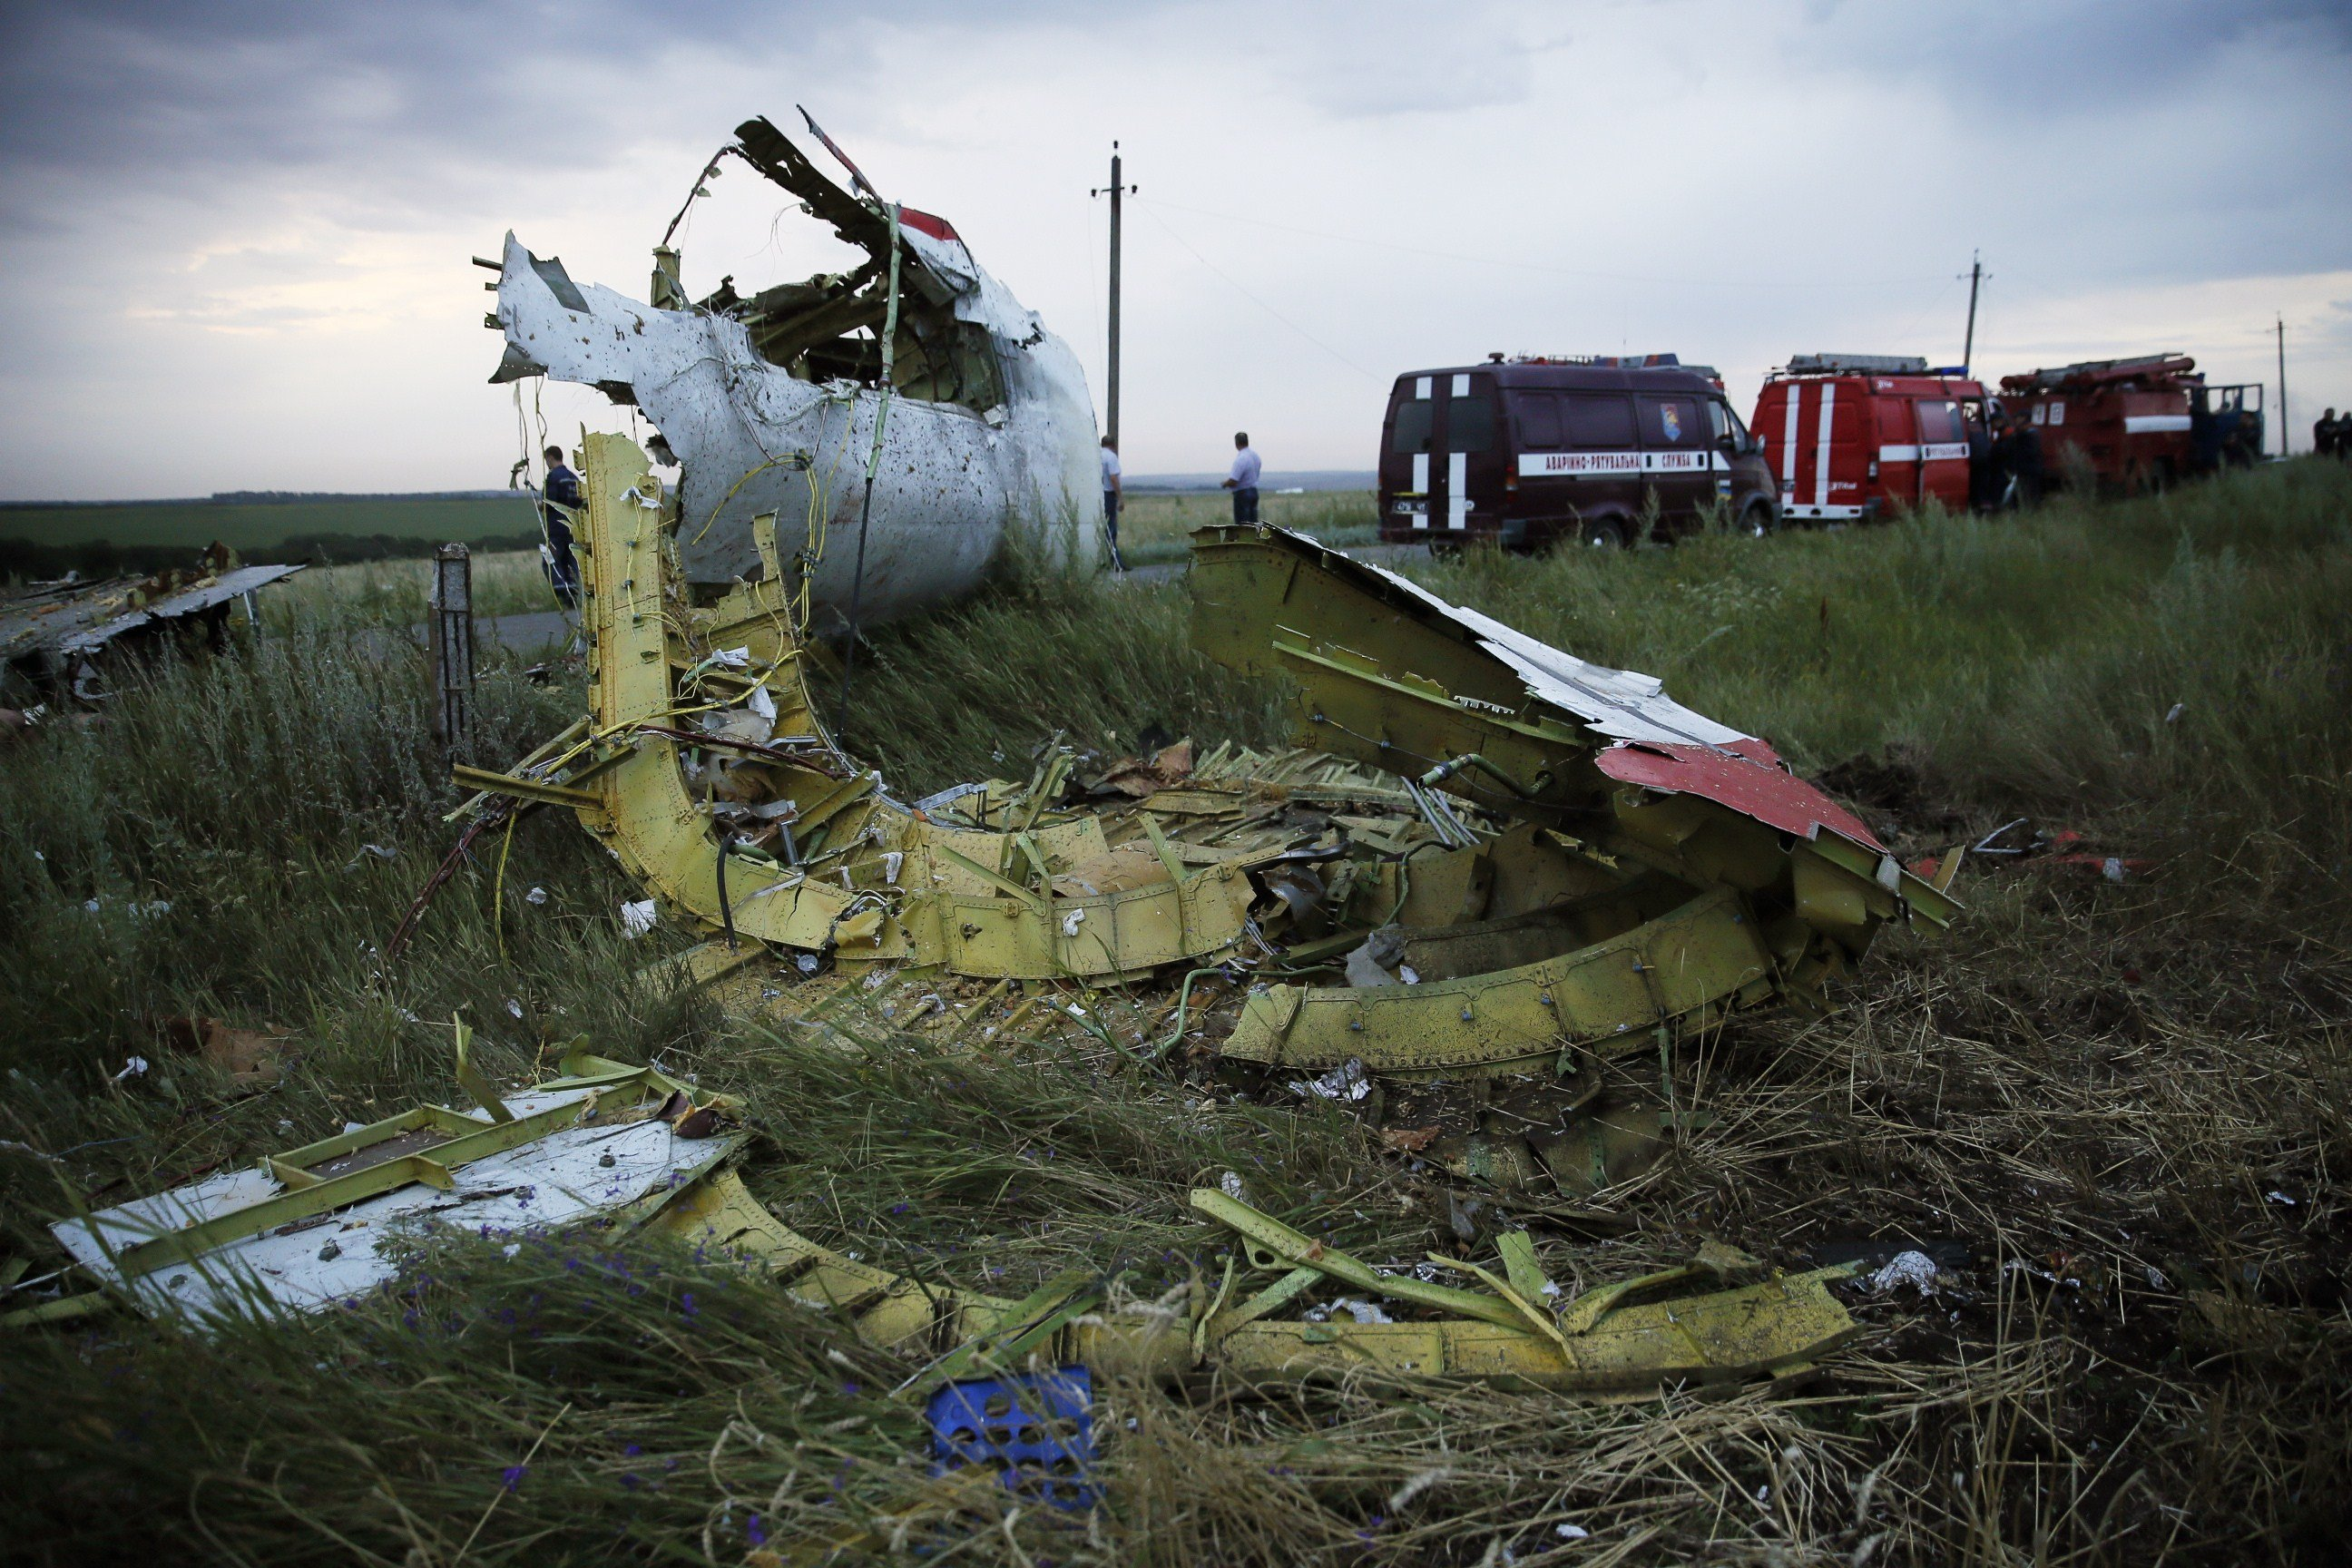 The wreckage of the Malaysian airliner carrying 295 people from Amsterdam to Kuala Lumpur after it crashed on July 17, 2014 near the town of Shaktarsk, in rebel-held east Ukraine.